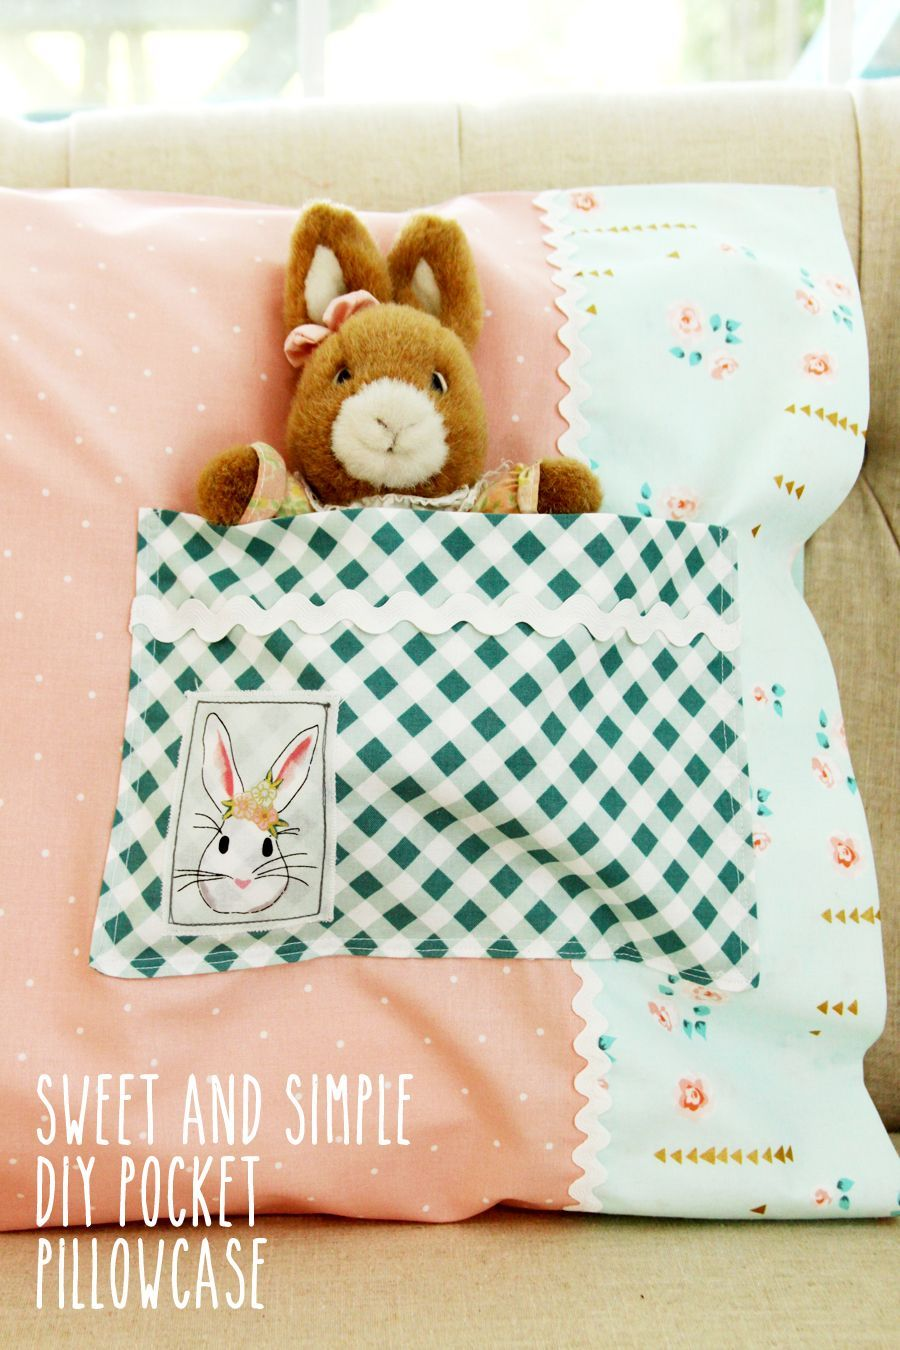 Sweet and simple diy pocket pillowcase sewing pinterest sweet and simple diy pocket pillowcase sewing project jeuxipadfo Choice Image